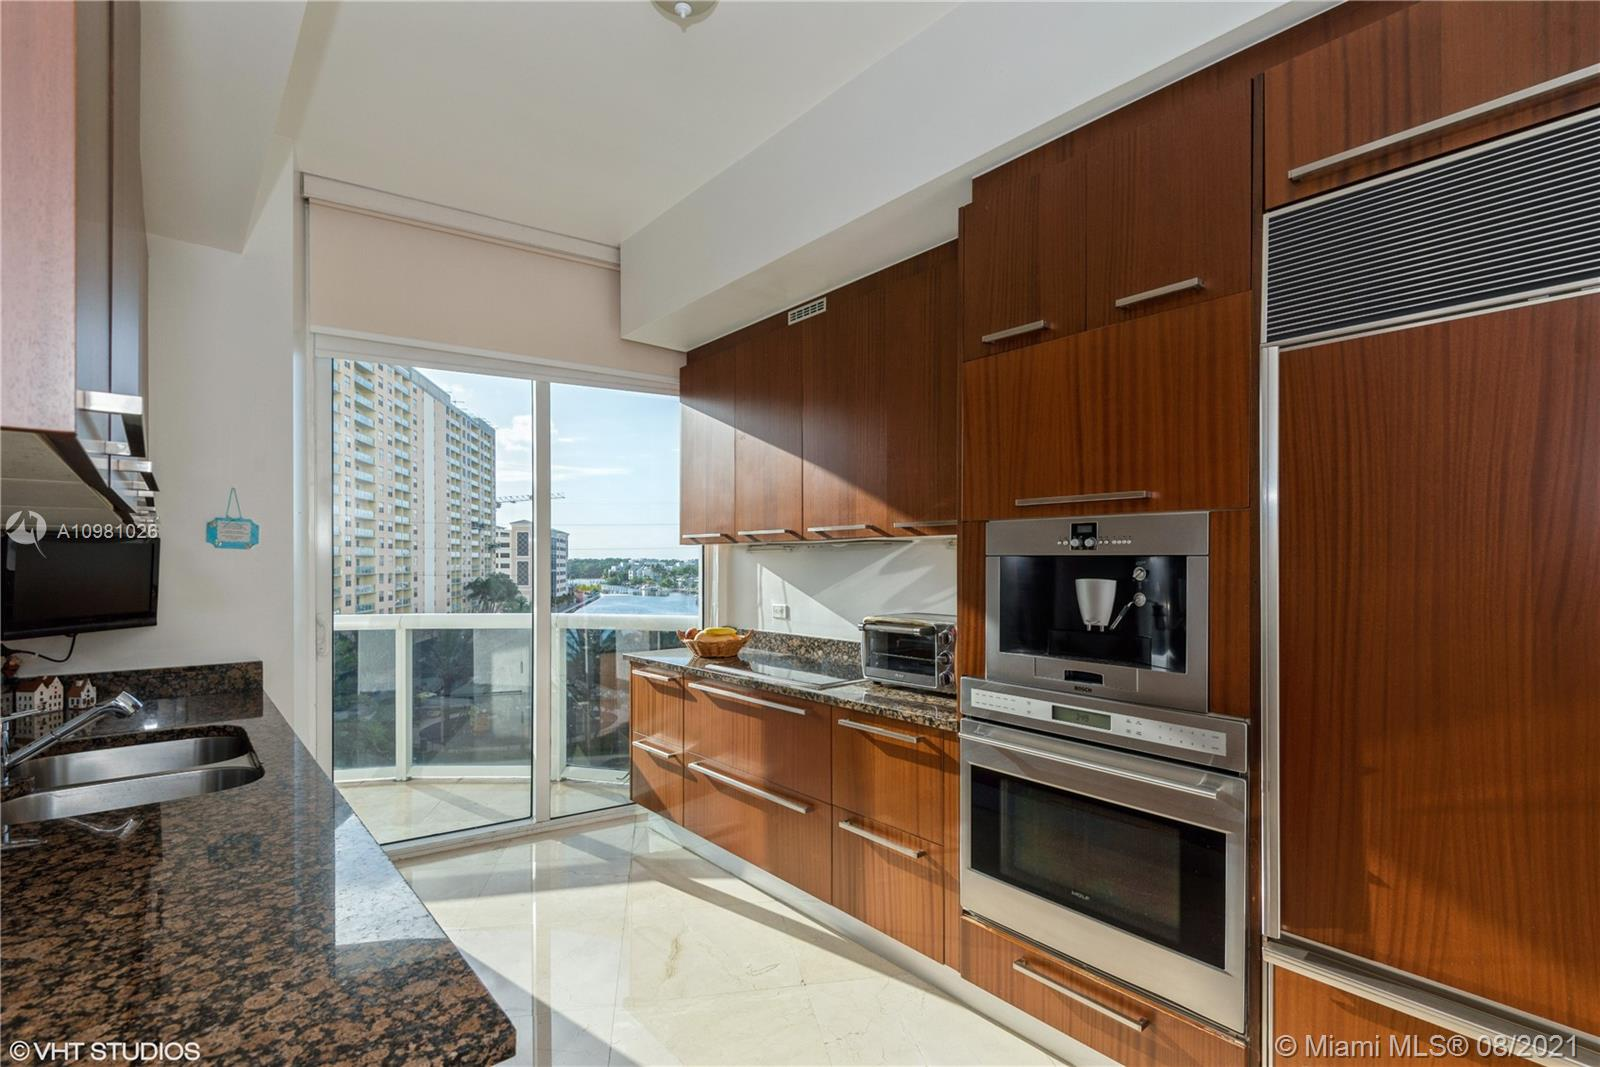 A great opportunity to buy in luxury Trump Towers, full service building with full beach service, restaurant on site for dine in and en suit delivery, valet, concierge 24 hrs, beautiful gym and spa area.  This large 2 bedroom unit has few unic features: the kitchen is more private and has a large window,  lots of natural light and you get to enjoy this beautiful view of intracoastal; there is an extra entrance from/to the kitchen (which is great for groceries drop off, no mess in the living area) AND the best part - extra entrance from the master bedroom with few perks to it: you can access pool area WITHOUT taking the elevator - easy and quick access to the pool area its all just steps away! Come see for yourself, you will not be disappointed!